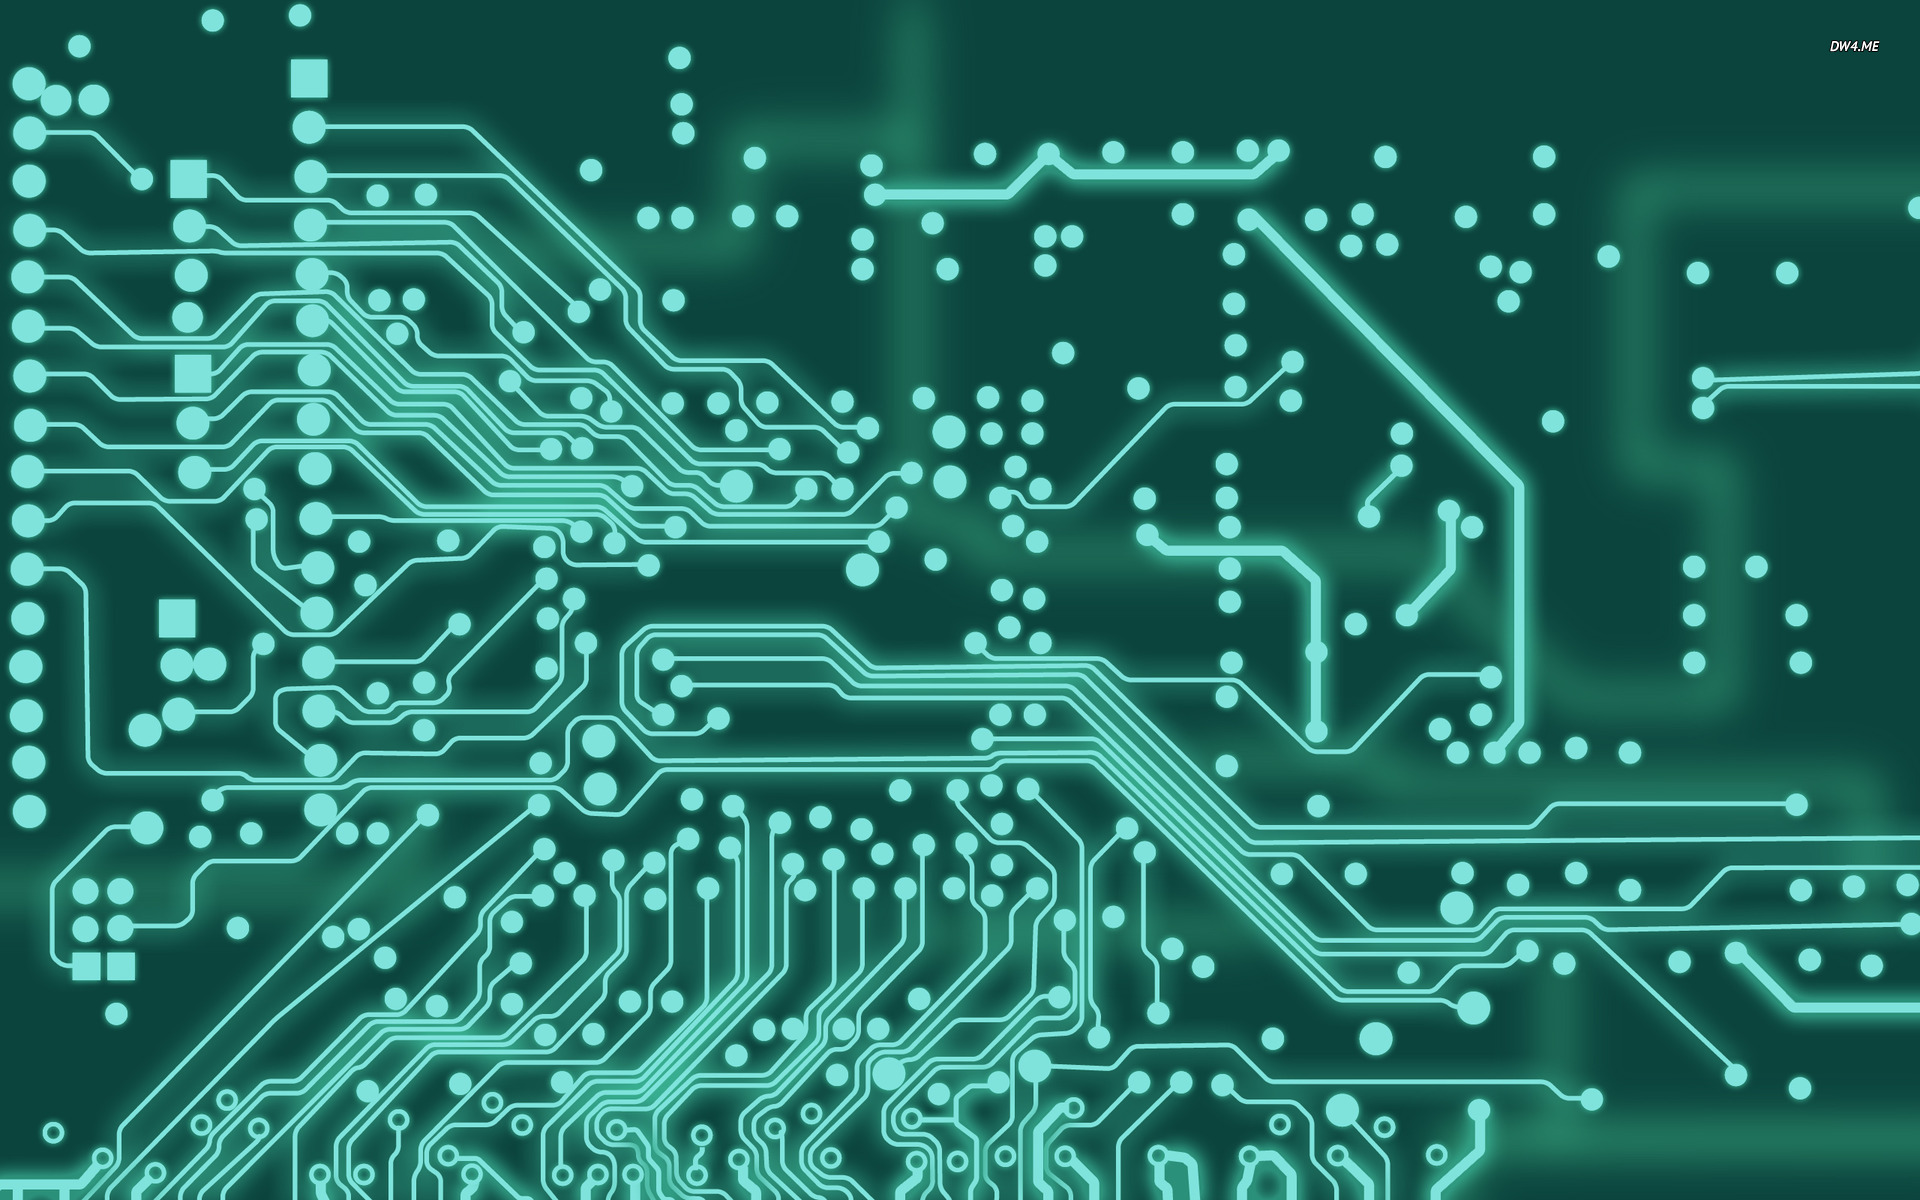 Circuit board wallpaper   Abstract wallpapers   775 1920x1200